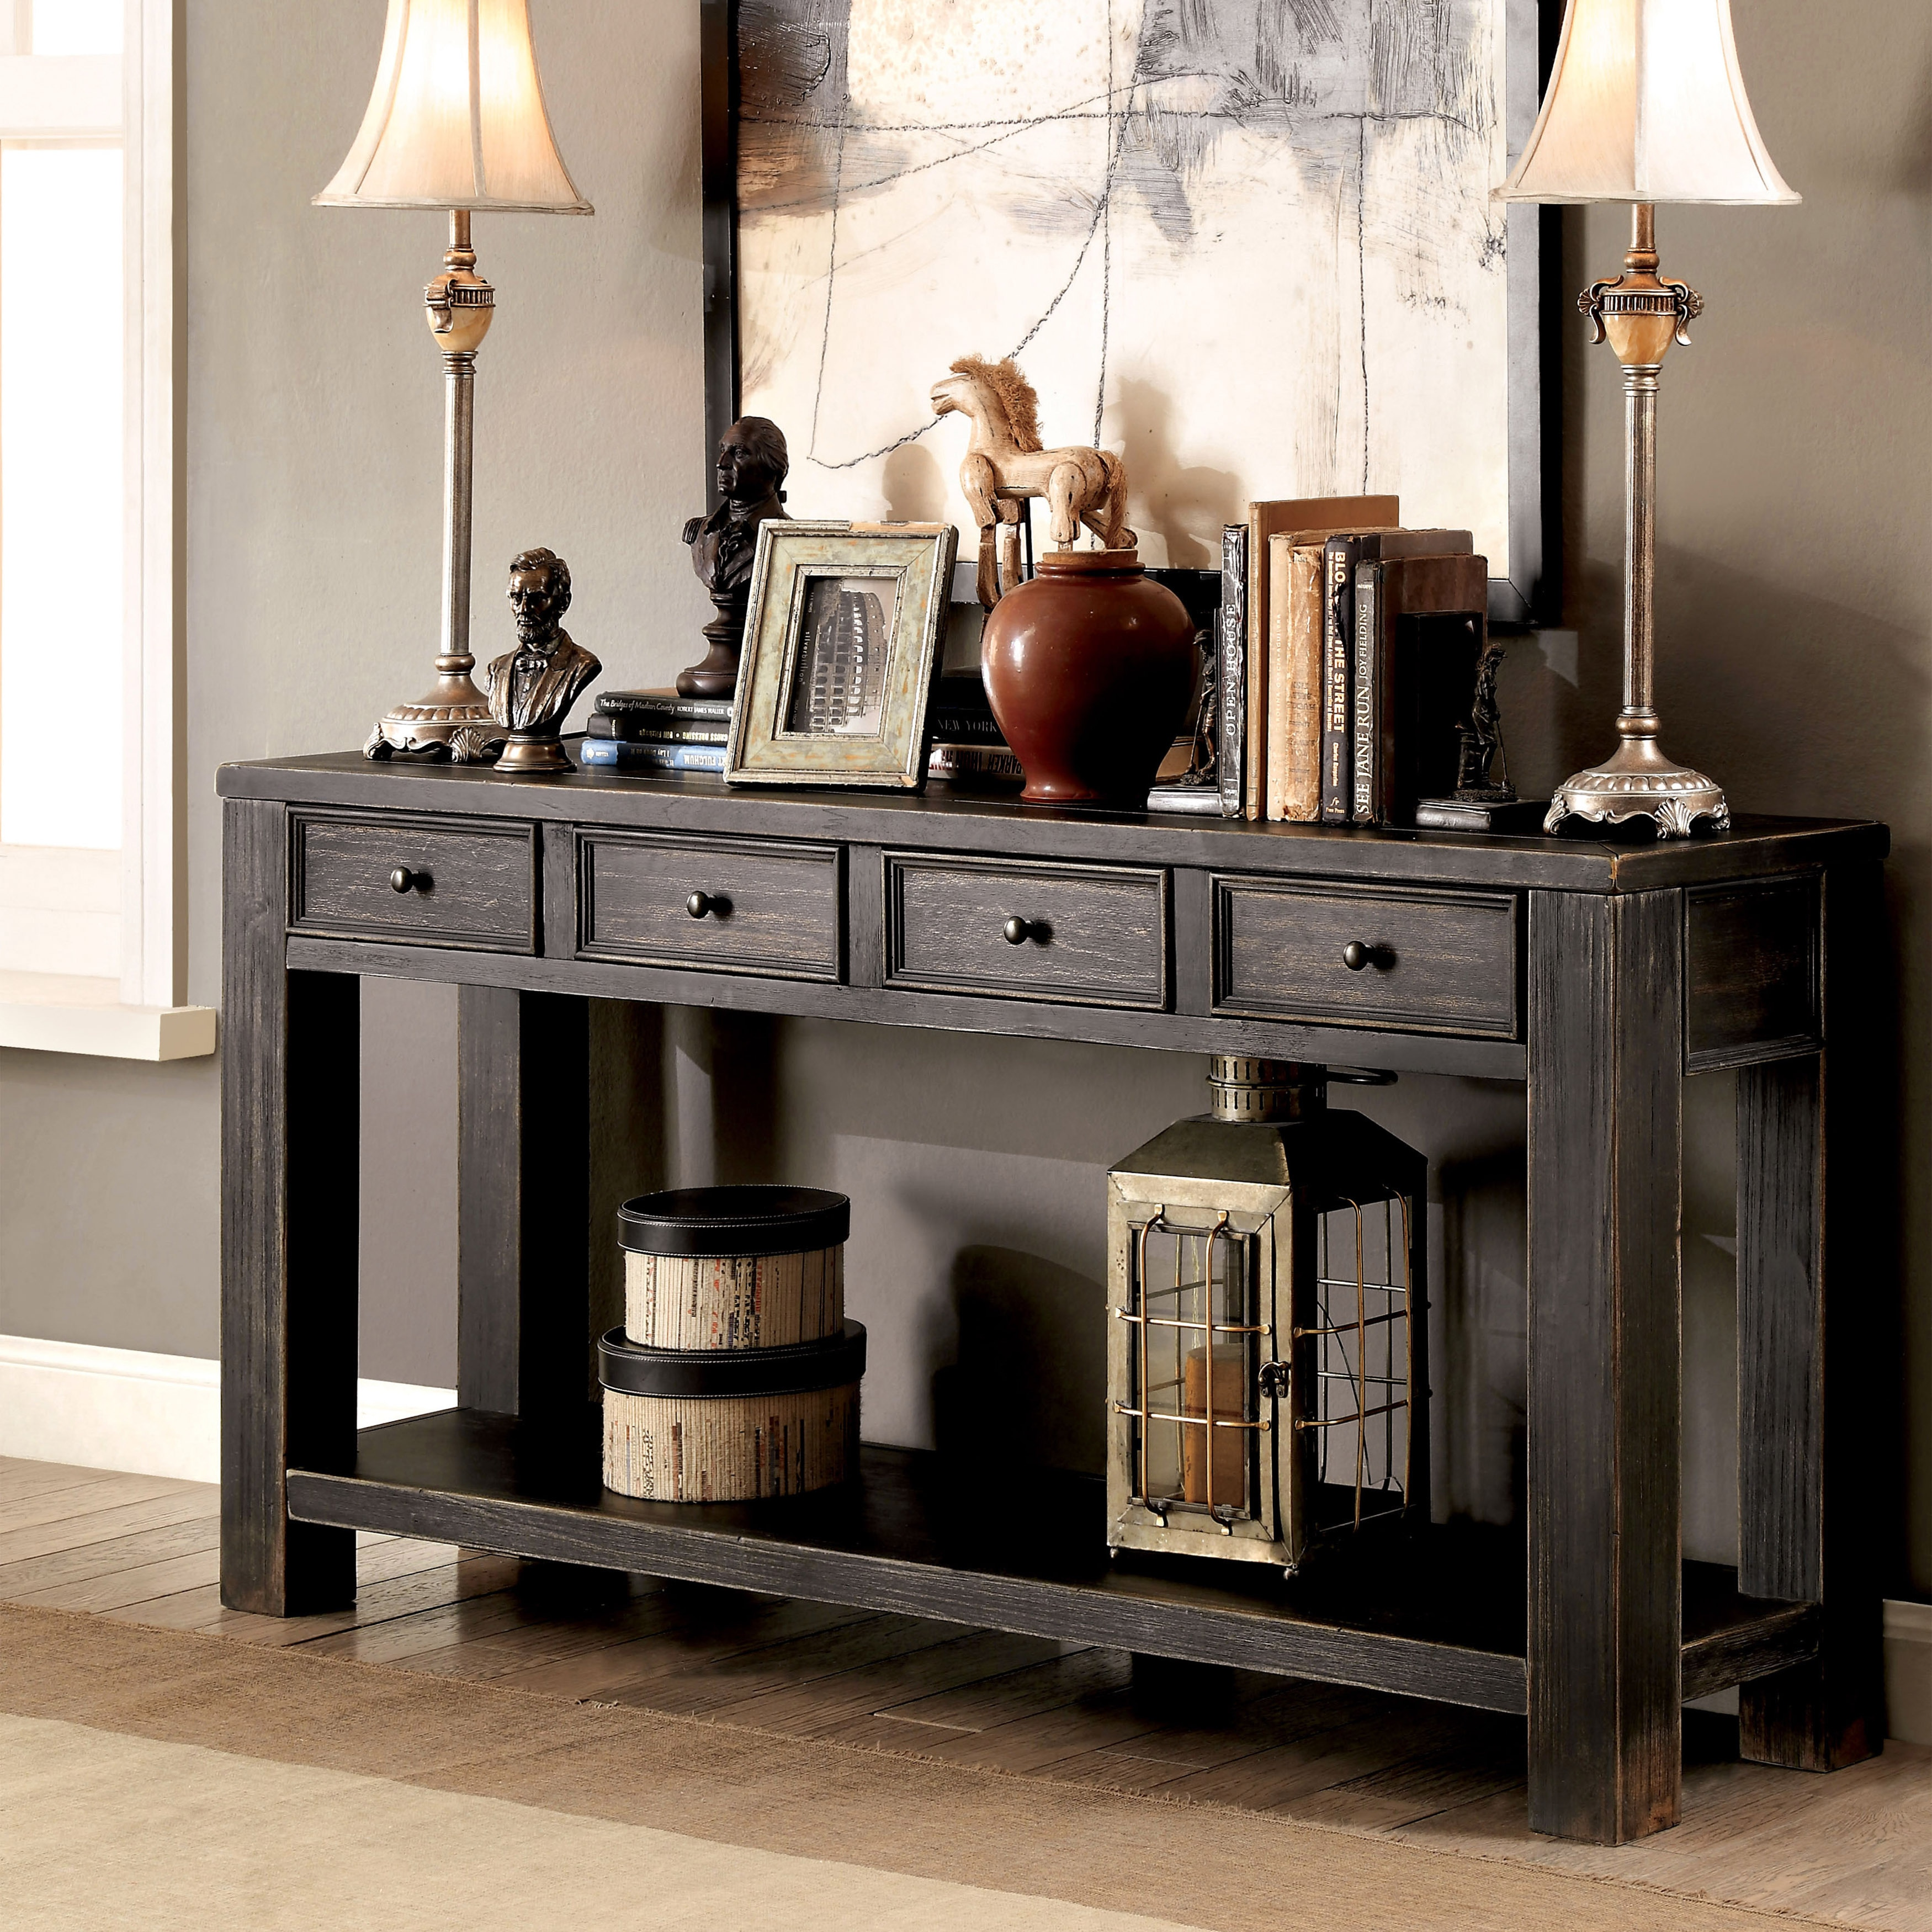 Furniture Of America Cosbin Bold Antique Black 4 Drawer Sofa Table On Sale Overstock 11459895